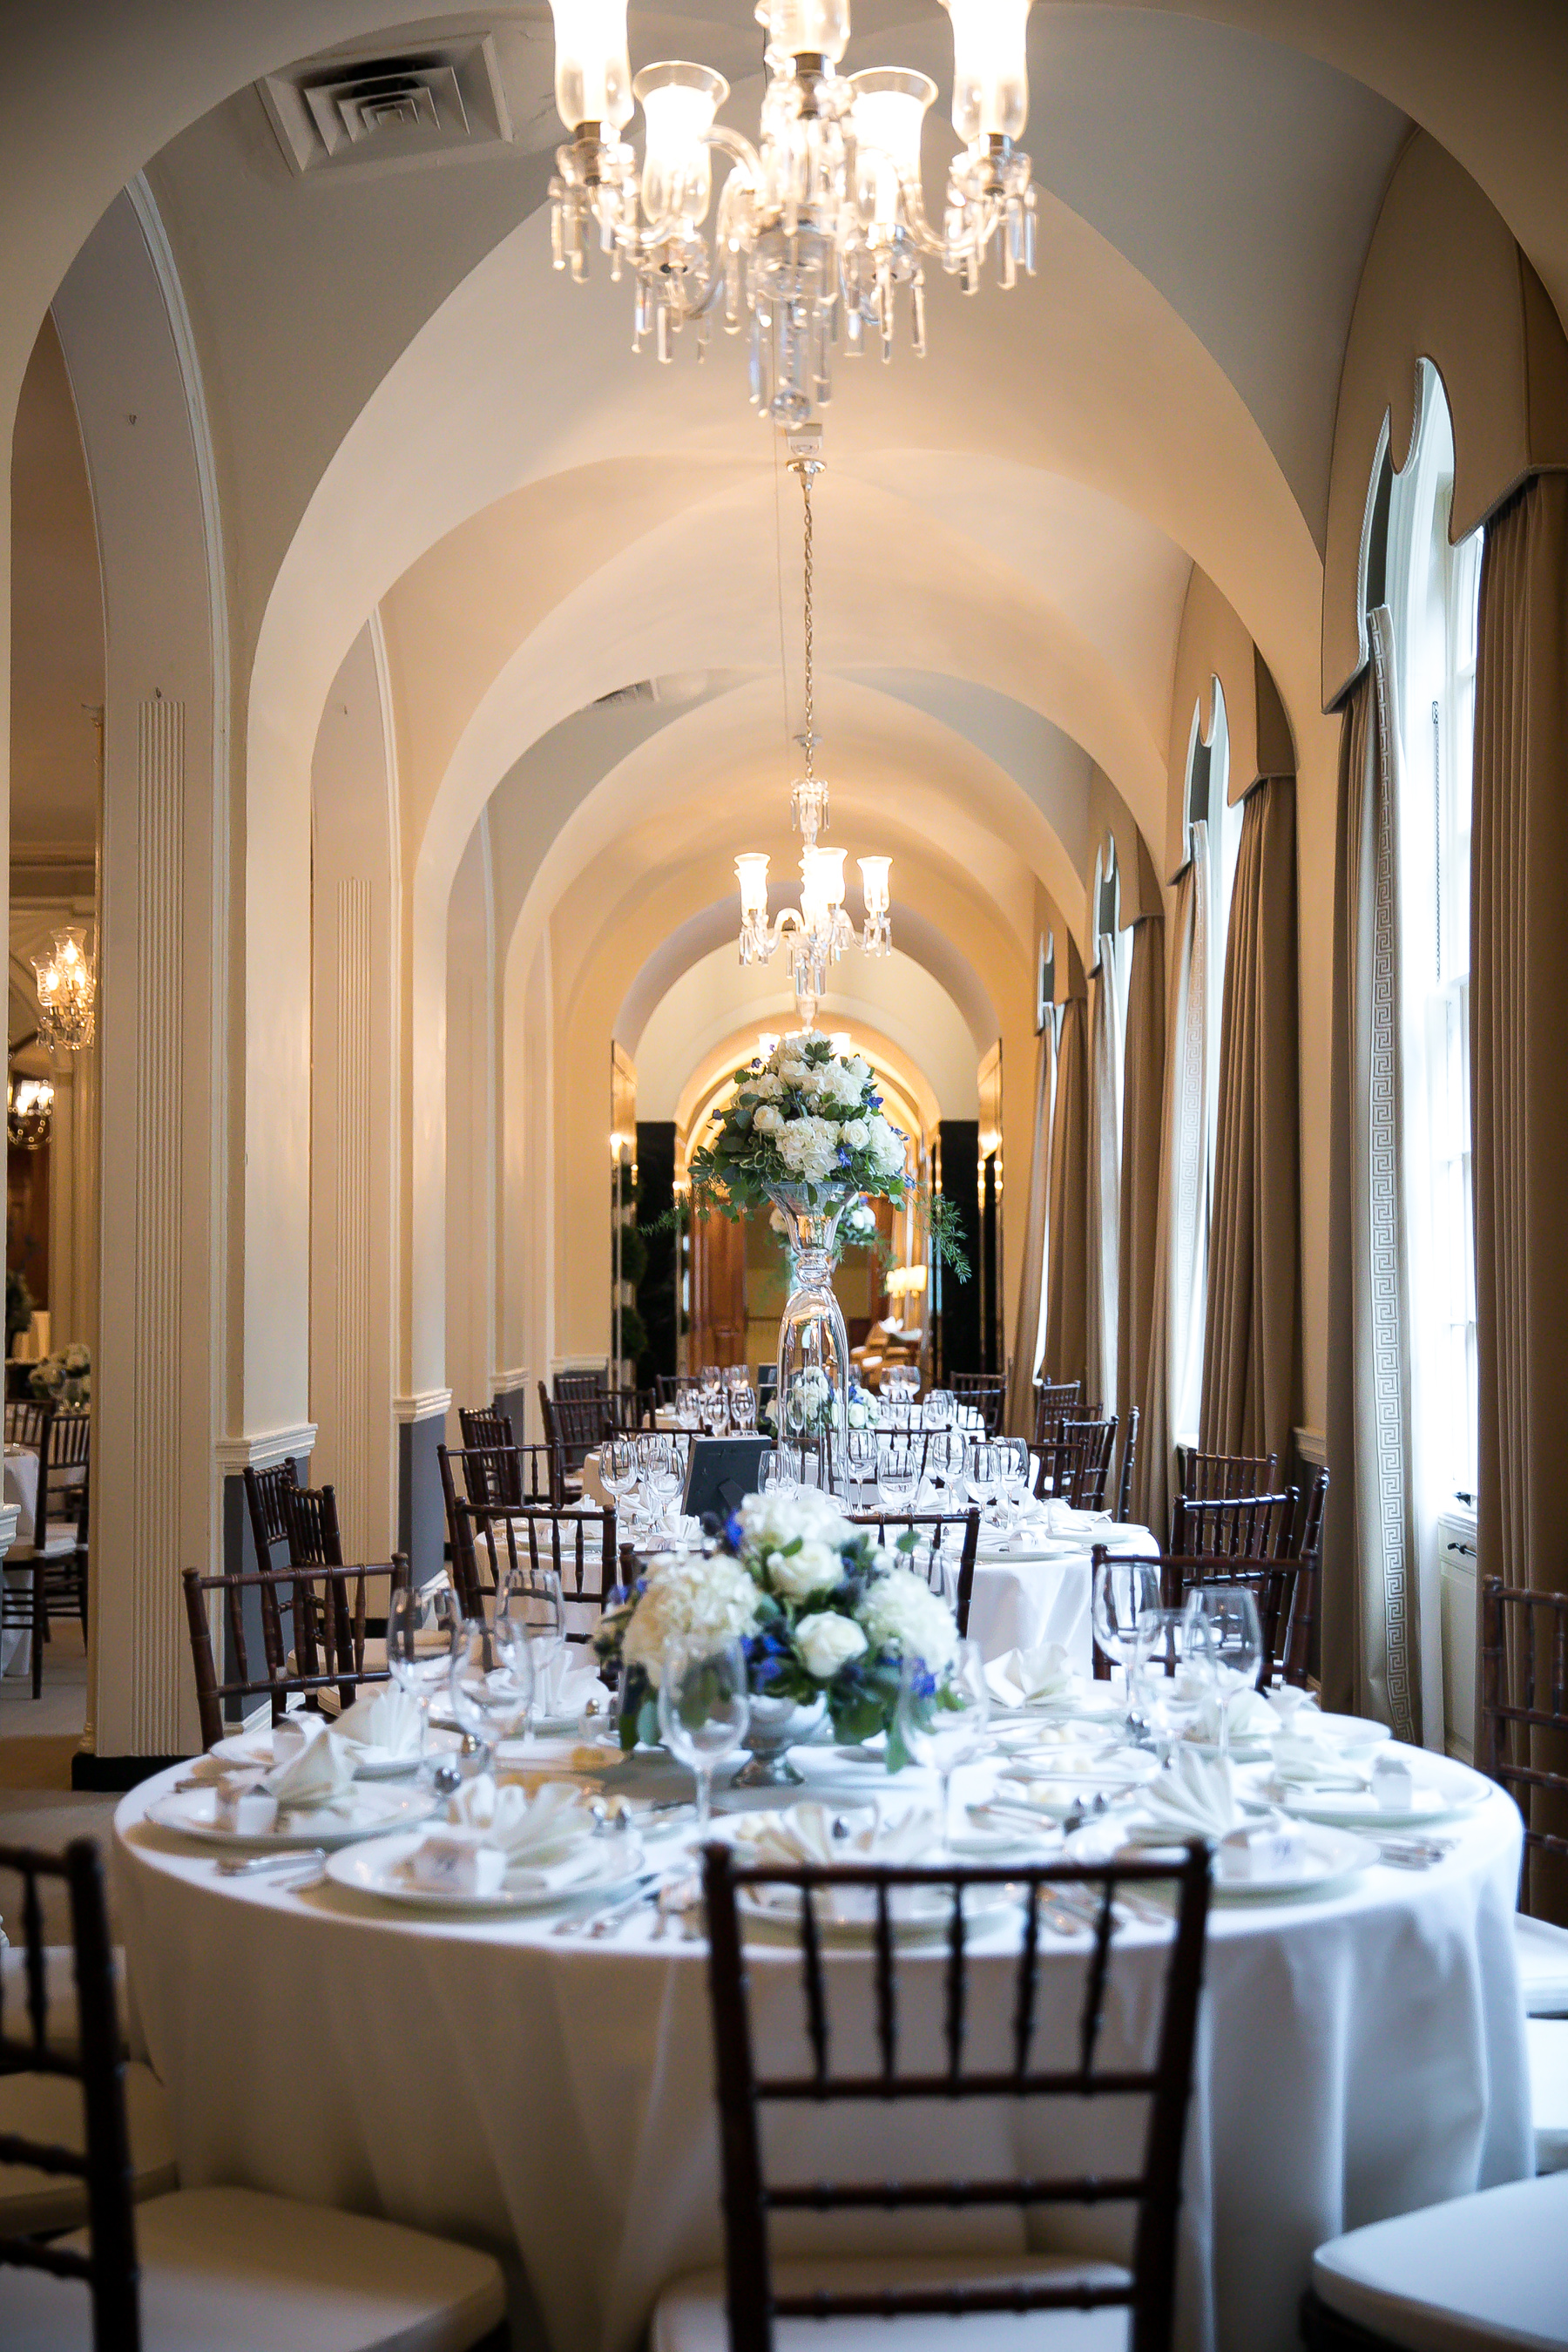 Table settings with white flower arrangements for wedding at the Baltimore Country Club